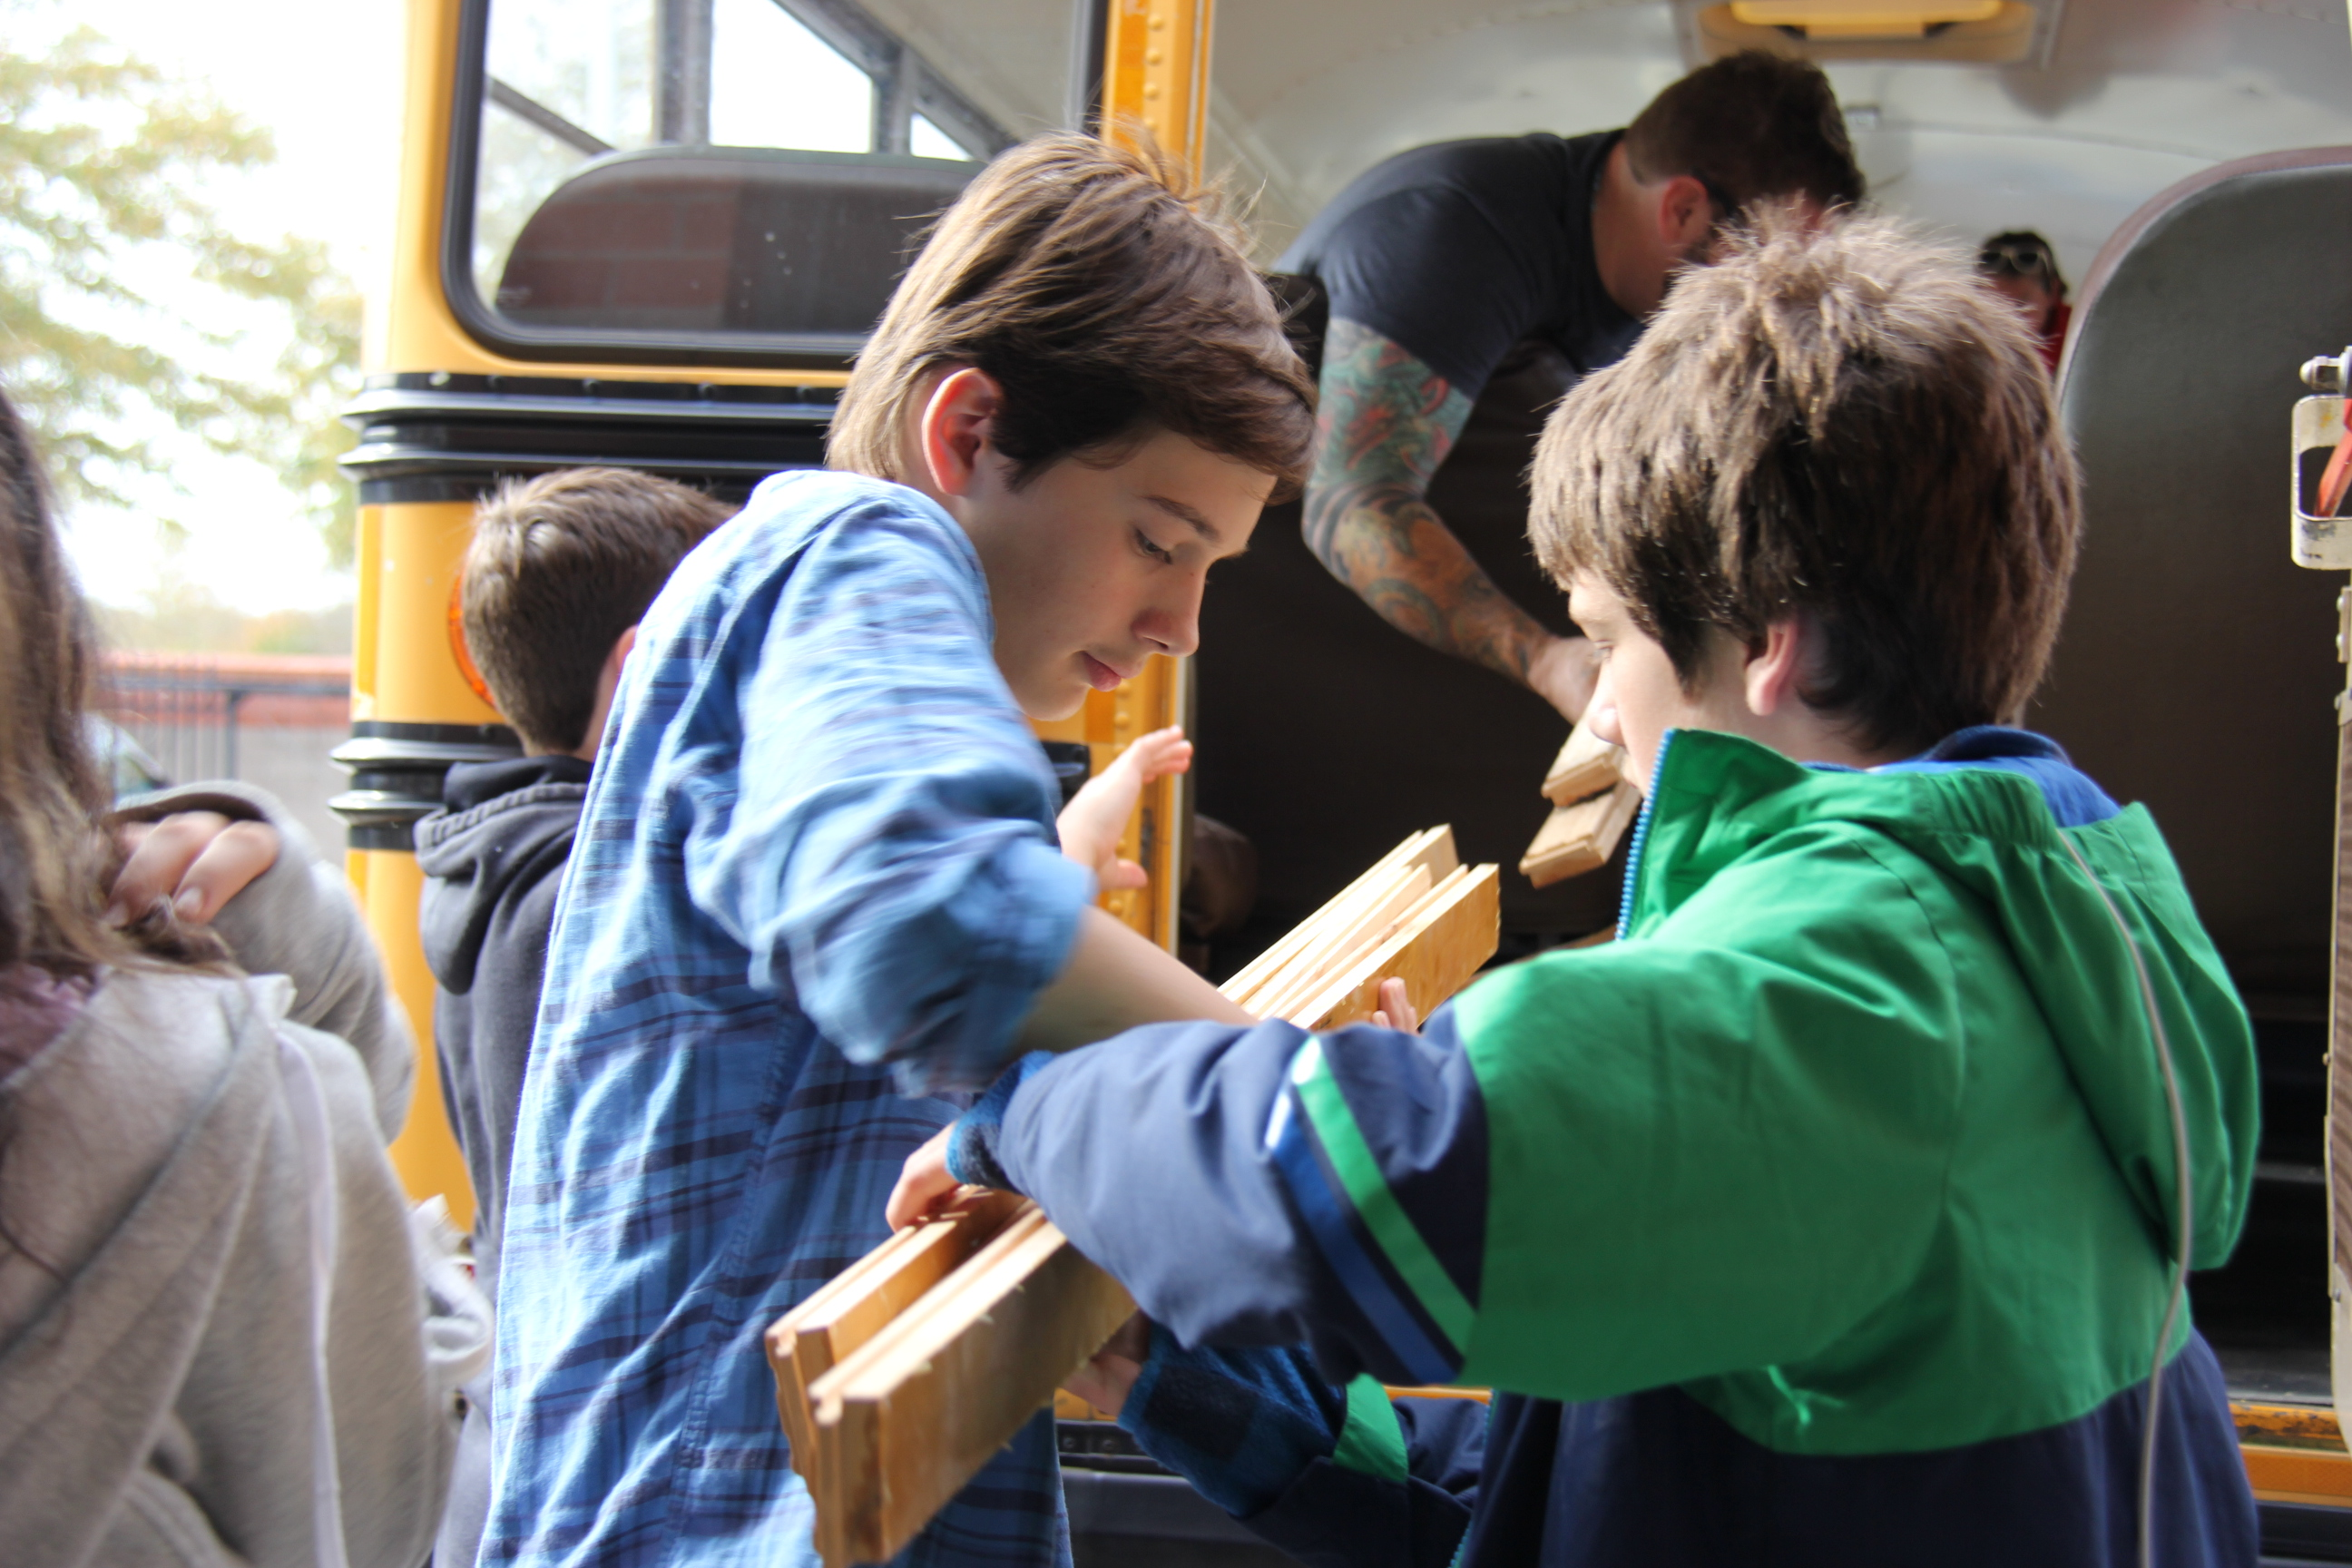 Students salvage materials to create traveling Eco Bus - The